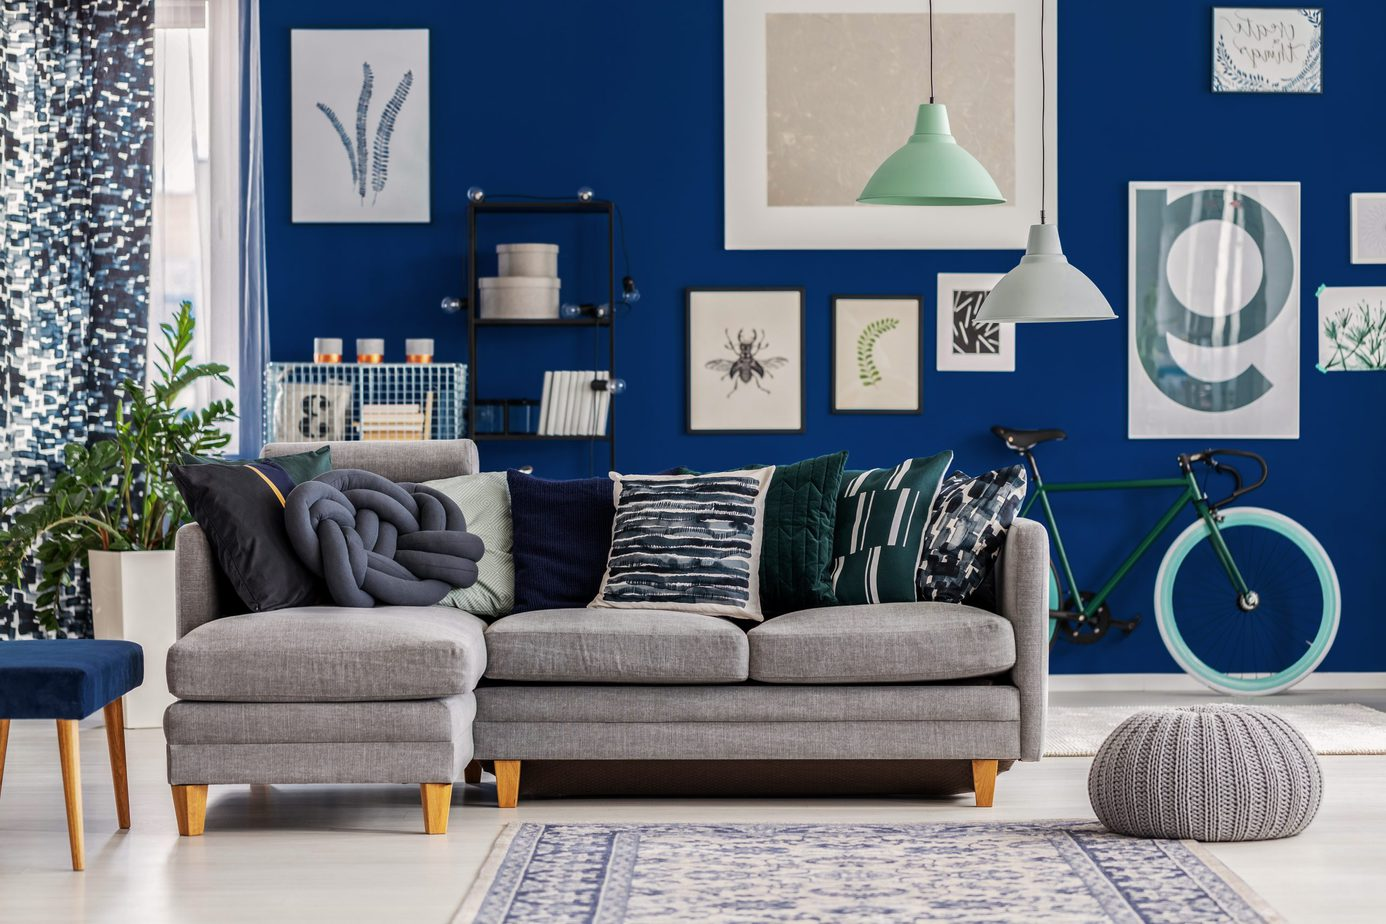 Grey and mint lamps above pouf and corner sofa with pillows in blue interior with posters on the wall